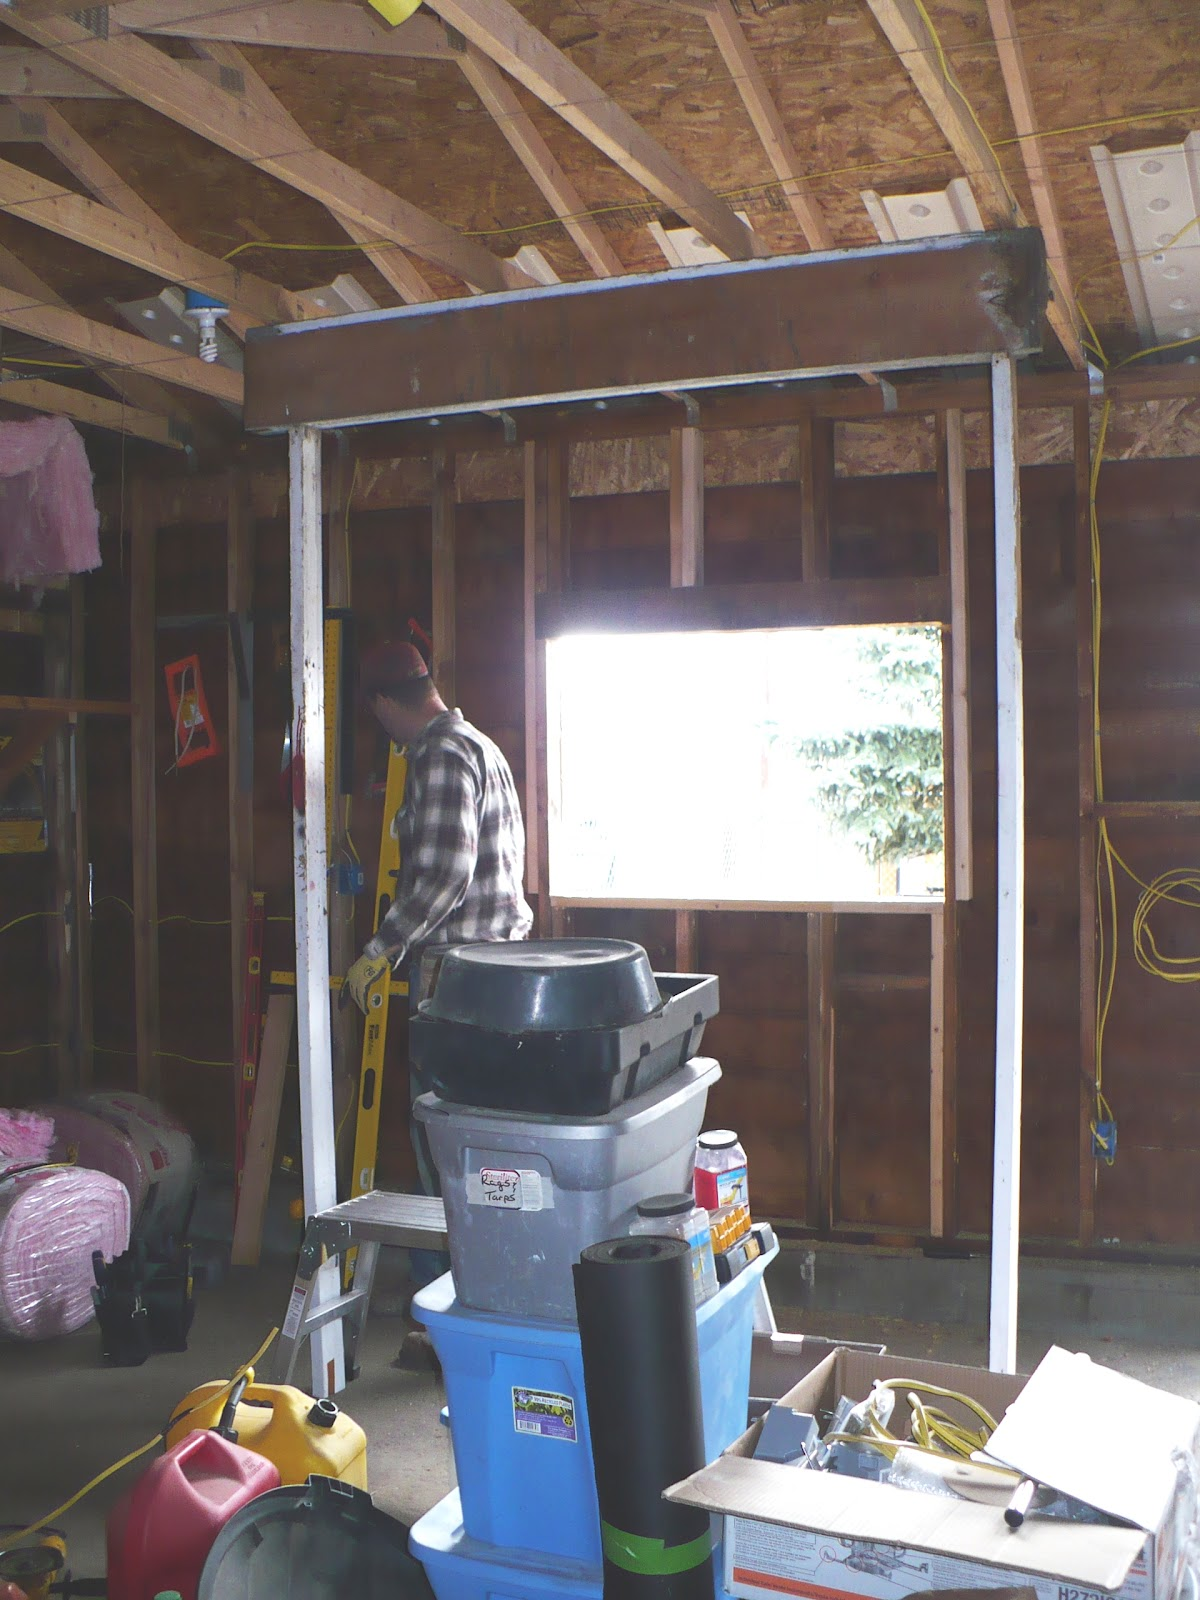 So We Decided To Install The Windows Side By Instead Of One On Each Garage Dismantled Wall And Luke Supported Rafters With A